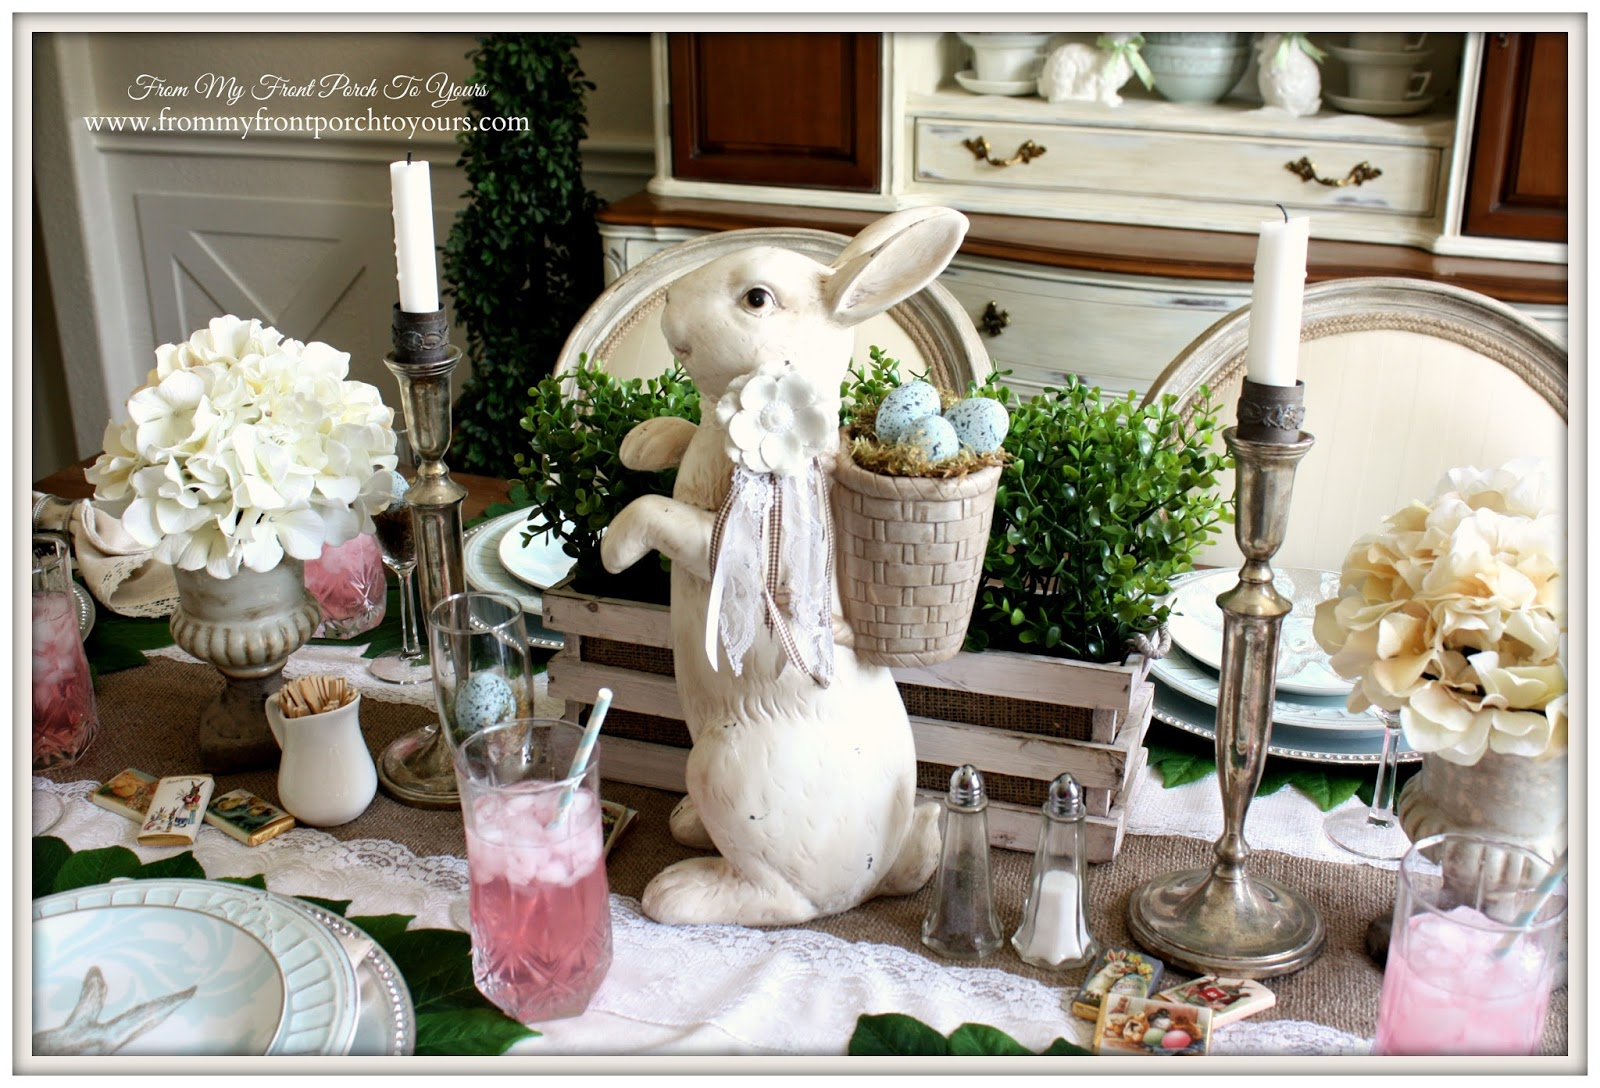 Easter Dining Room Decor-French Farmhouse Easter Dining Room- From My Front Porch To Yours